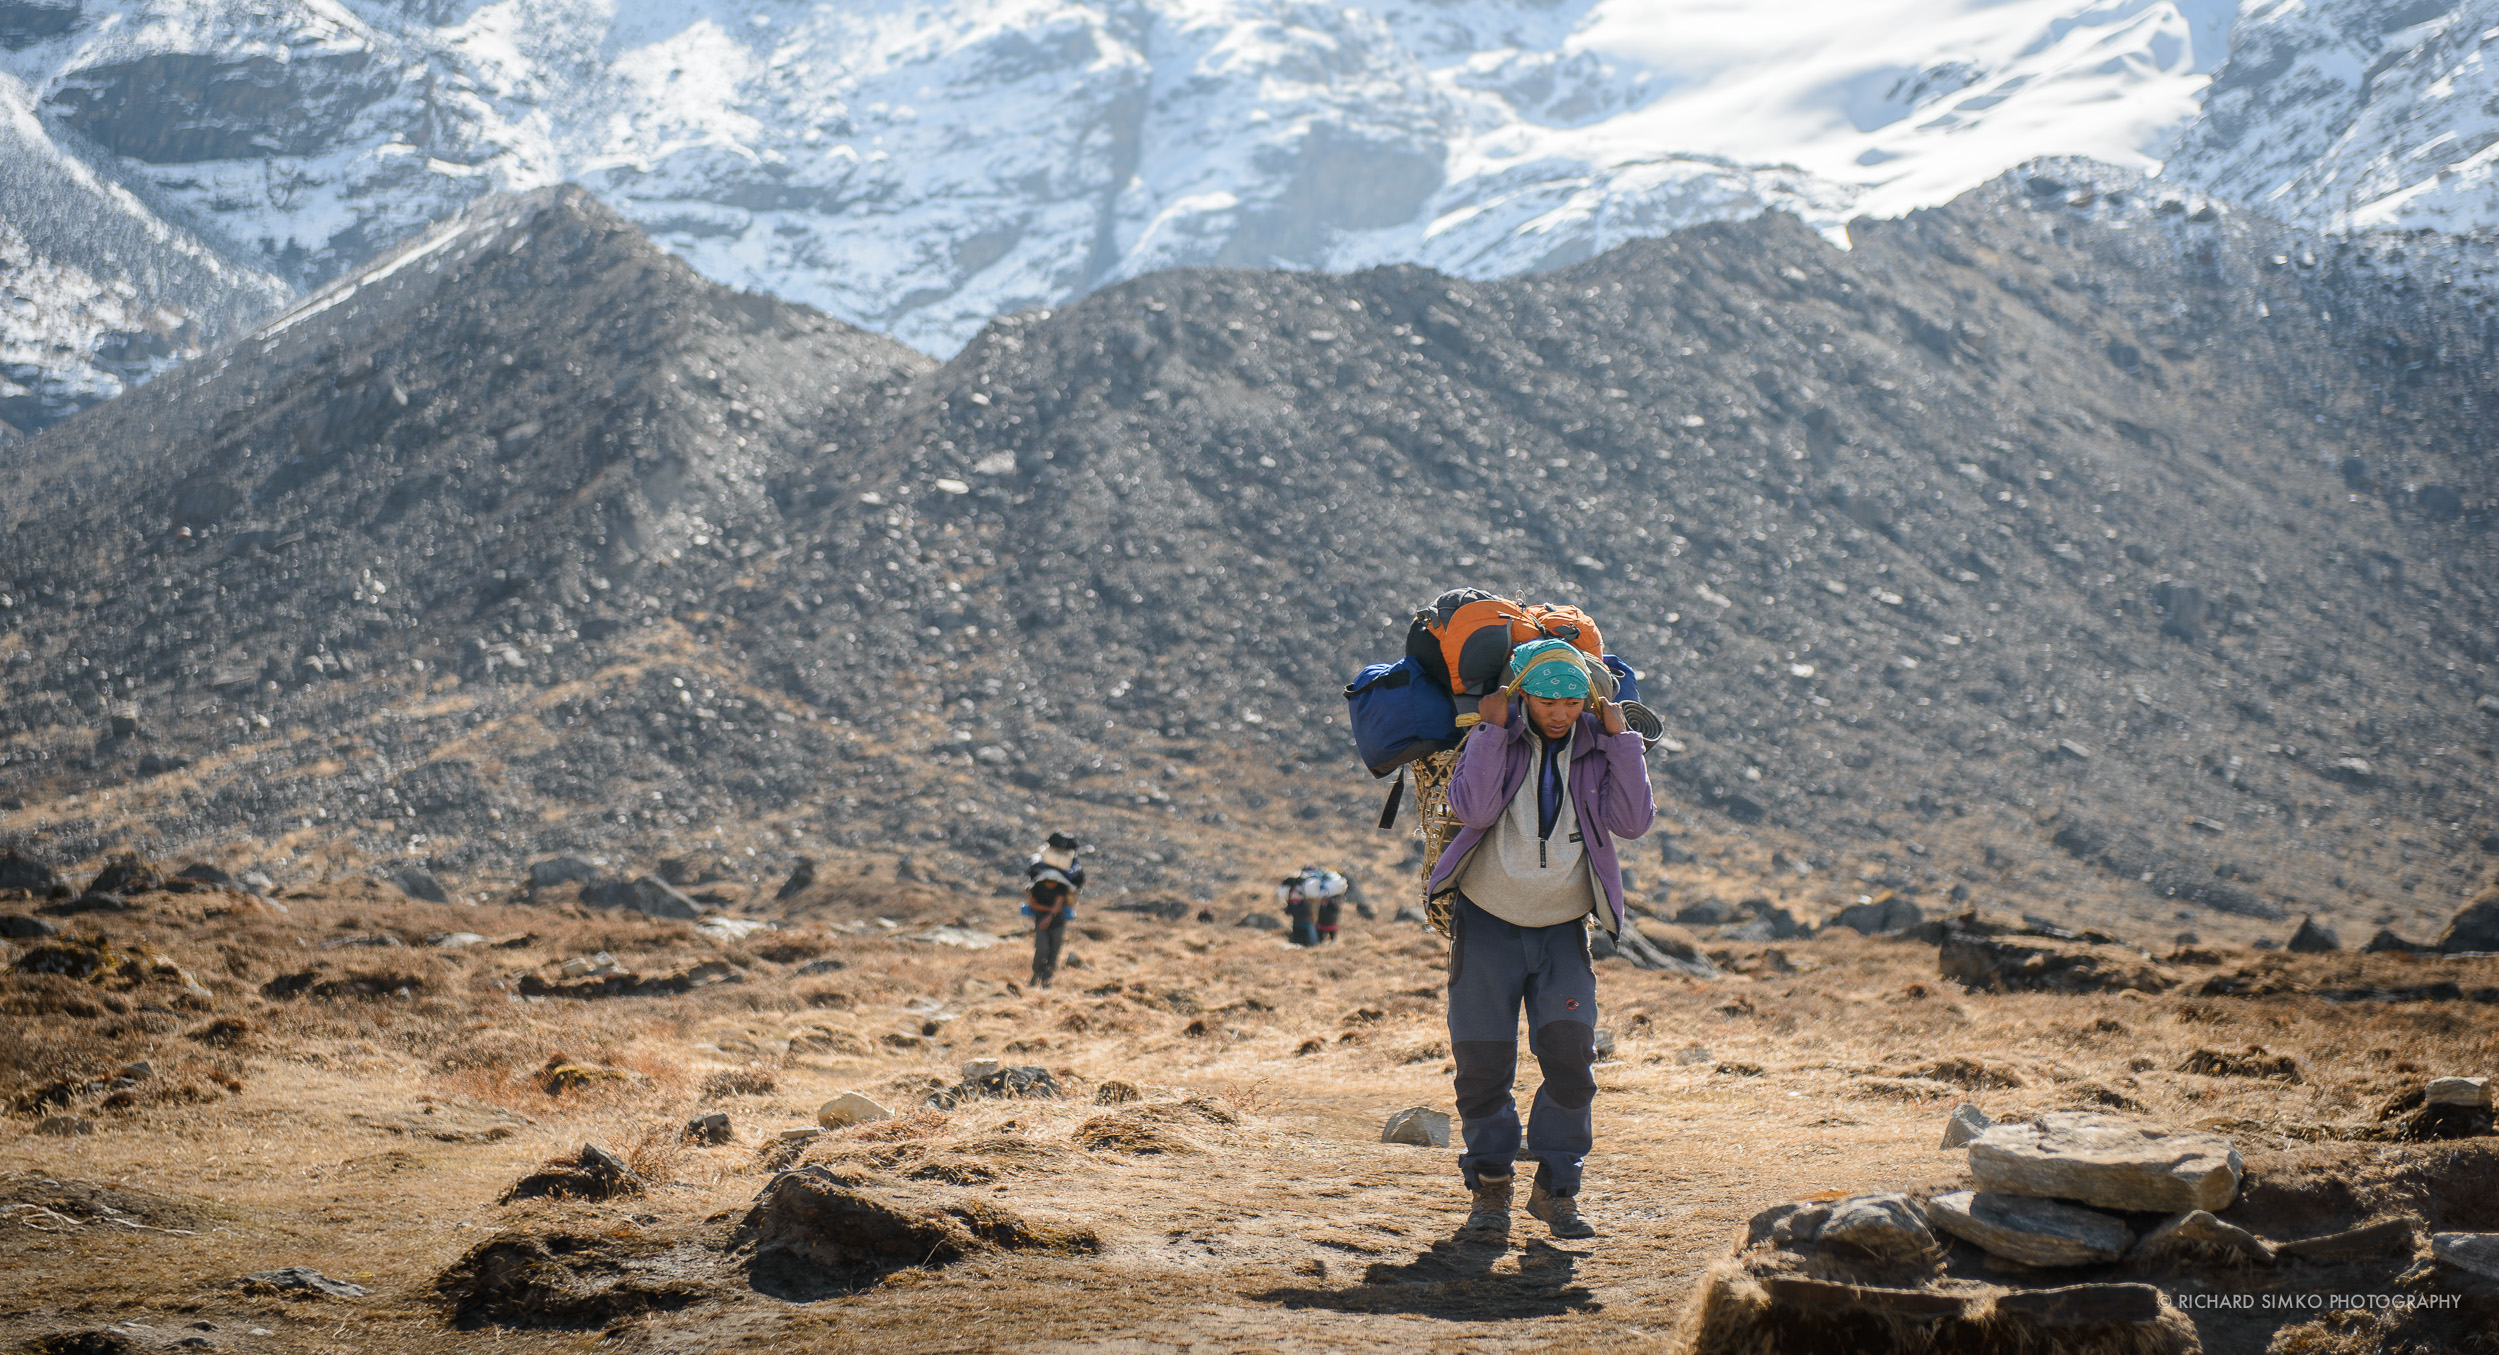 Sherpa carrying a backpack on the way from Khare.